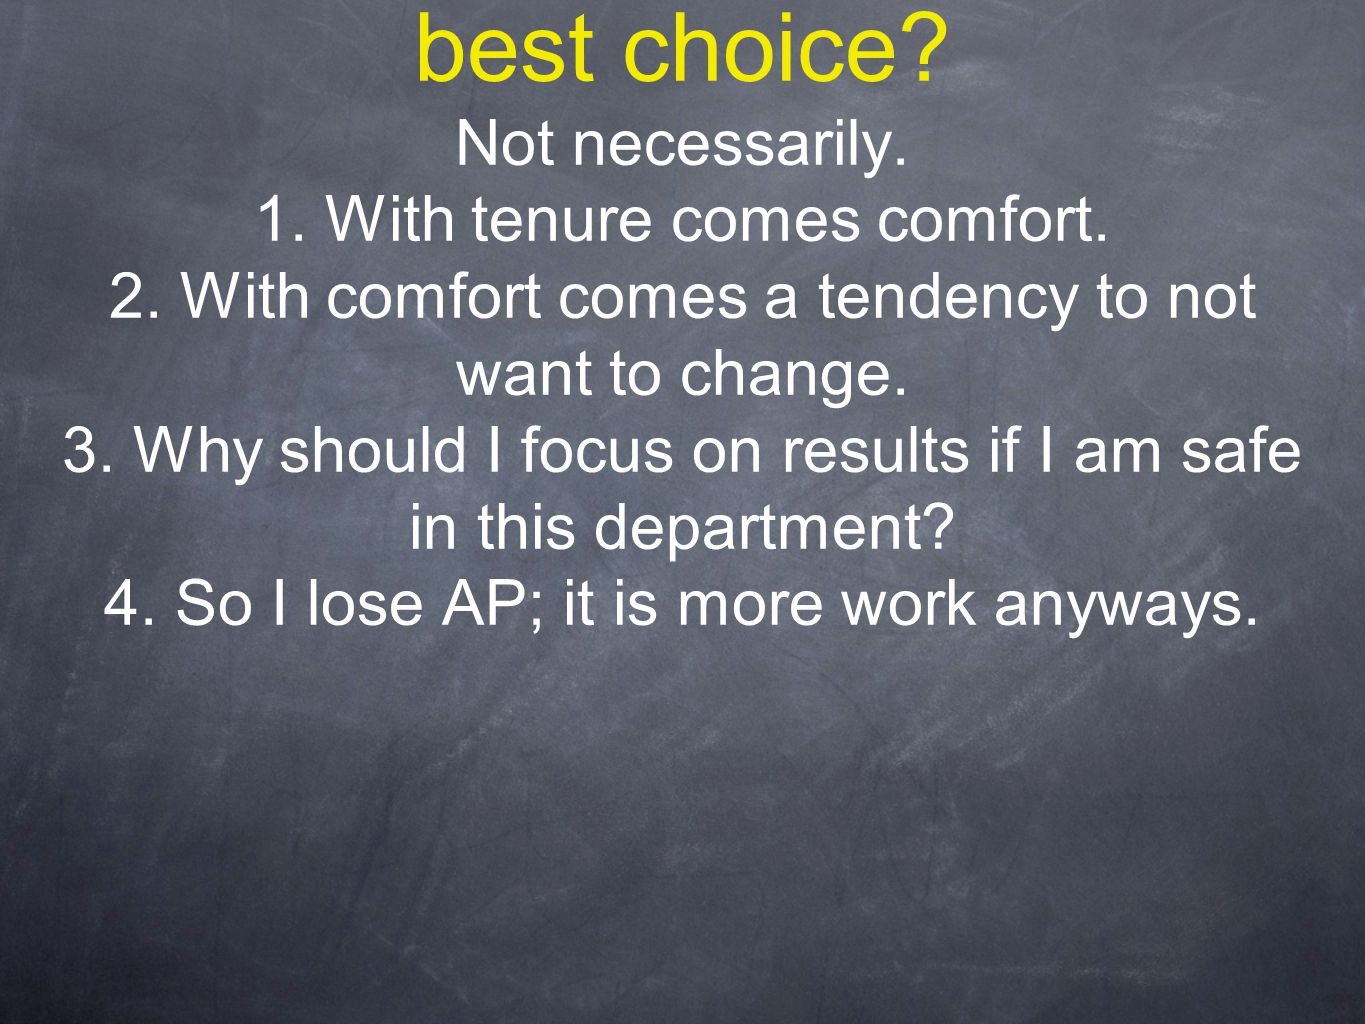 Are tenured teachers the best choice. Not necessarily.